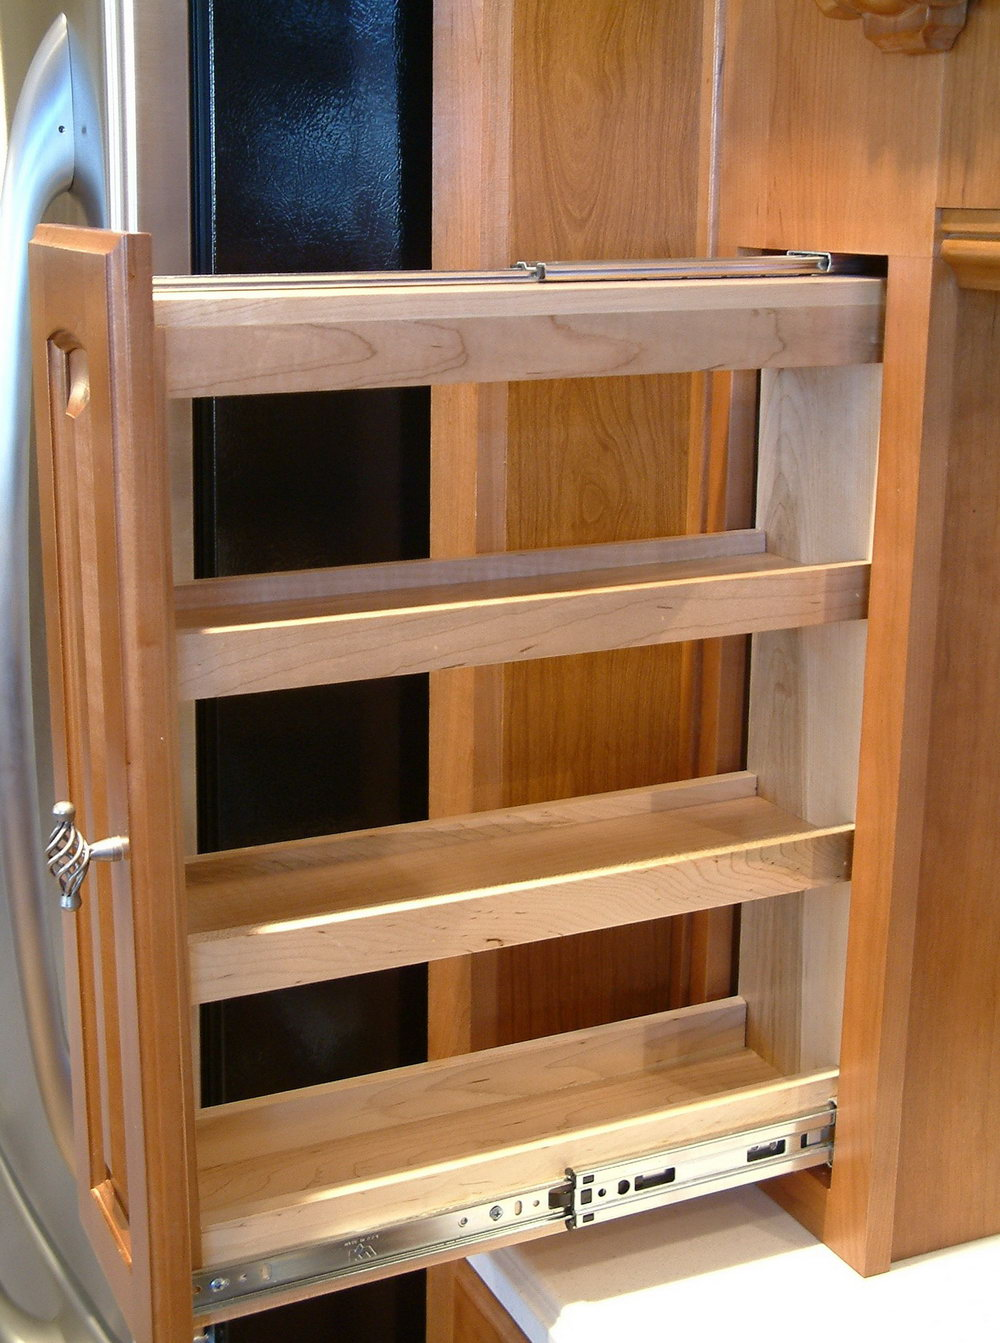 Kitchen Cabinet Spice Racks